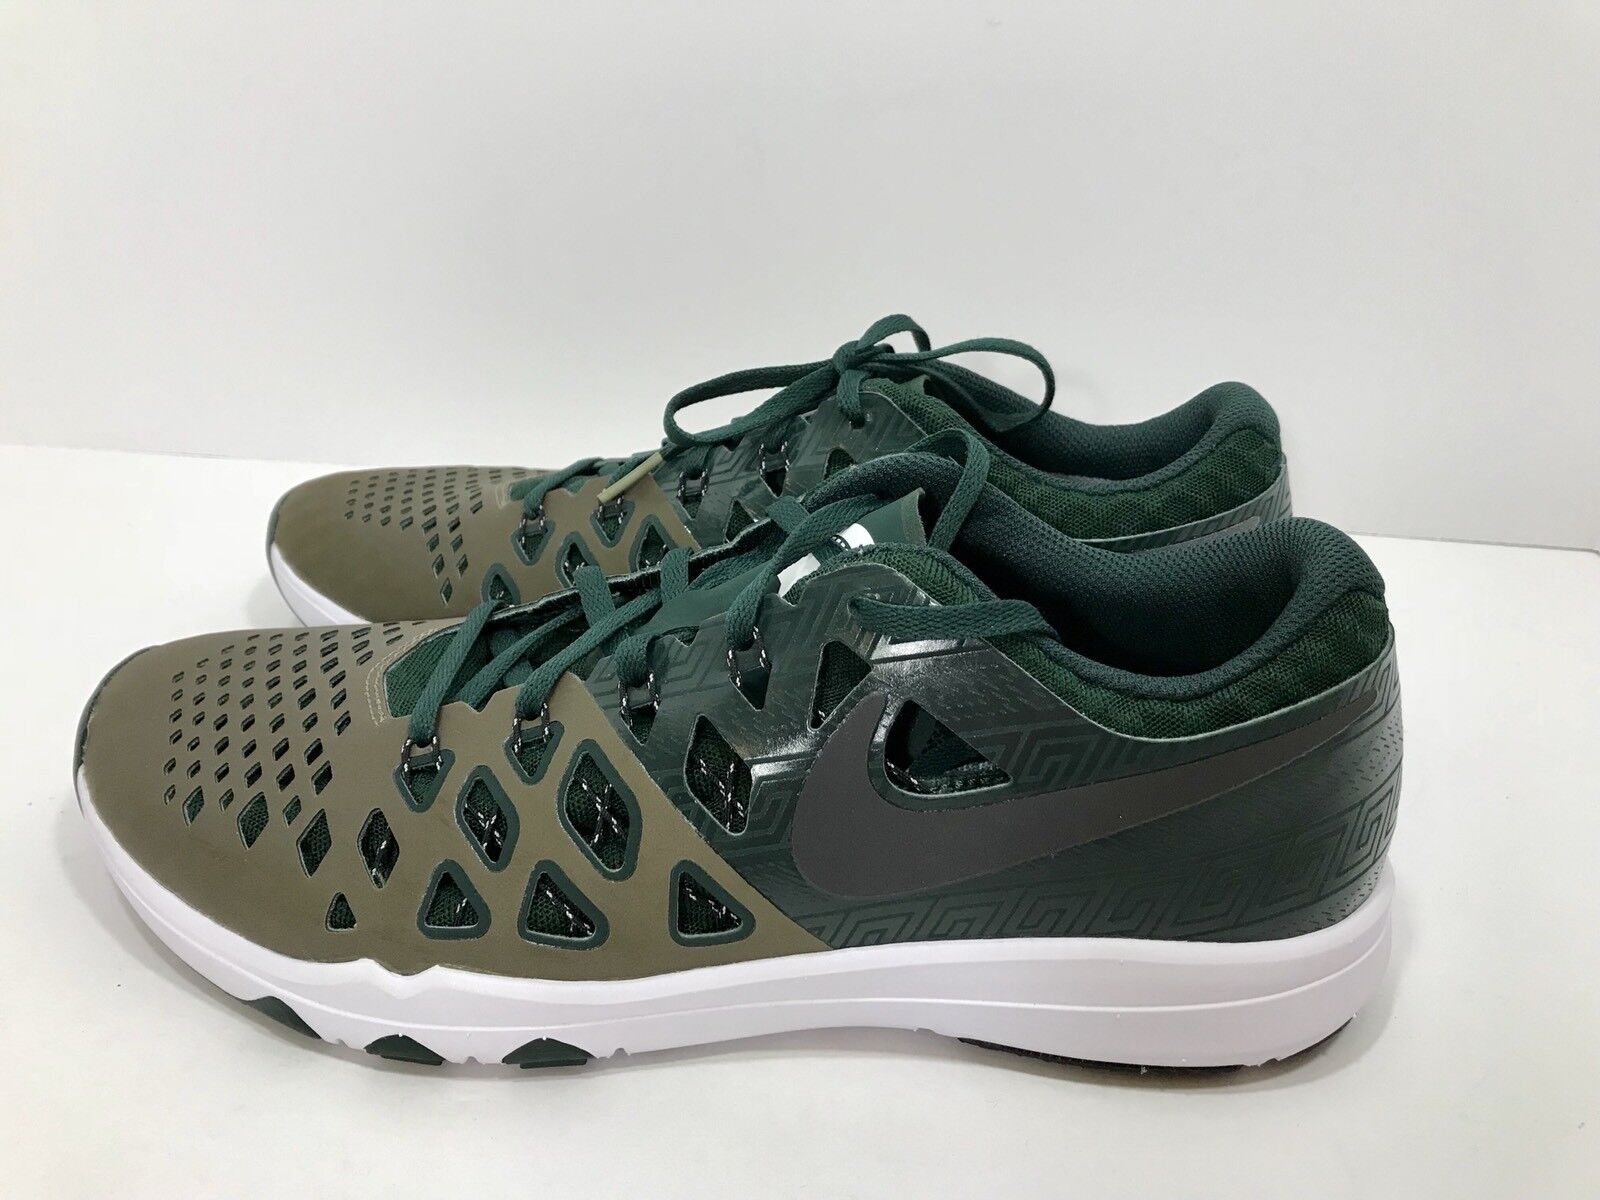 low priced d2325 a37a2 ... Nike Train Speed 4 Amp Michigan Michigan Michigan State Spartans Men s  Size 13 ...